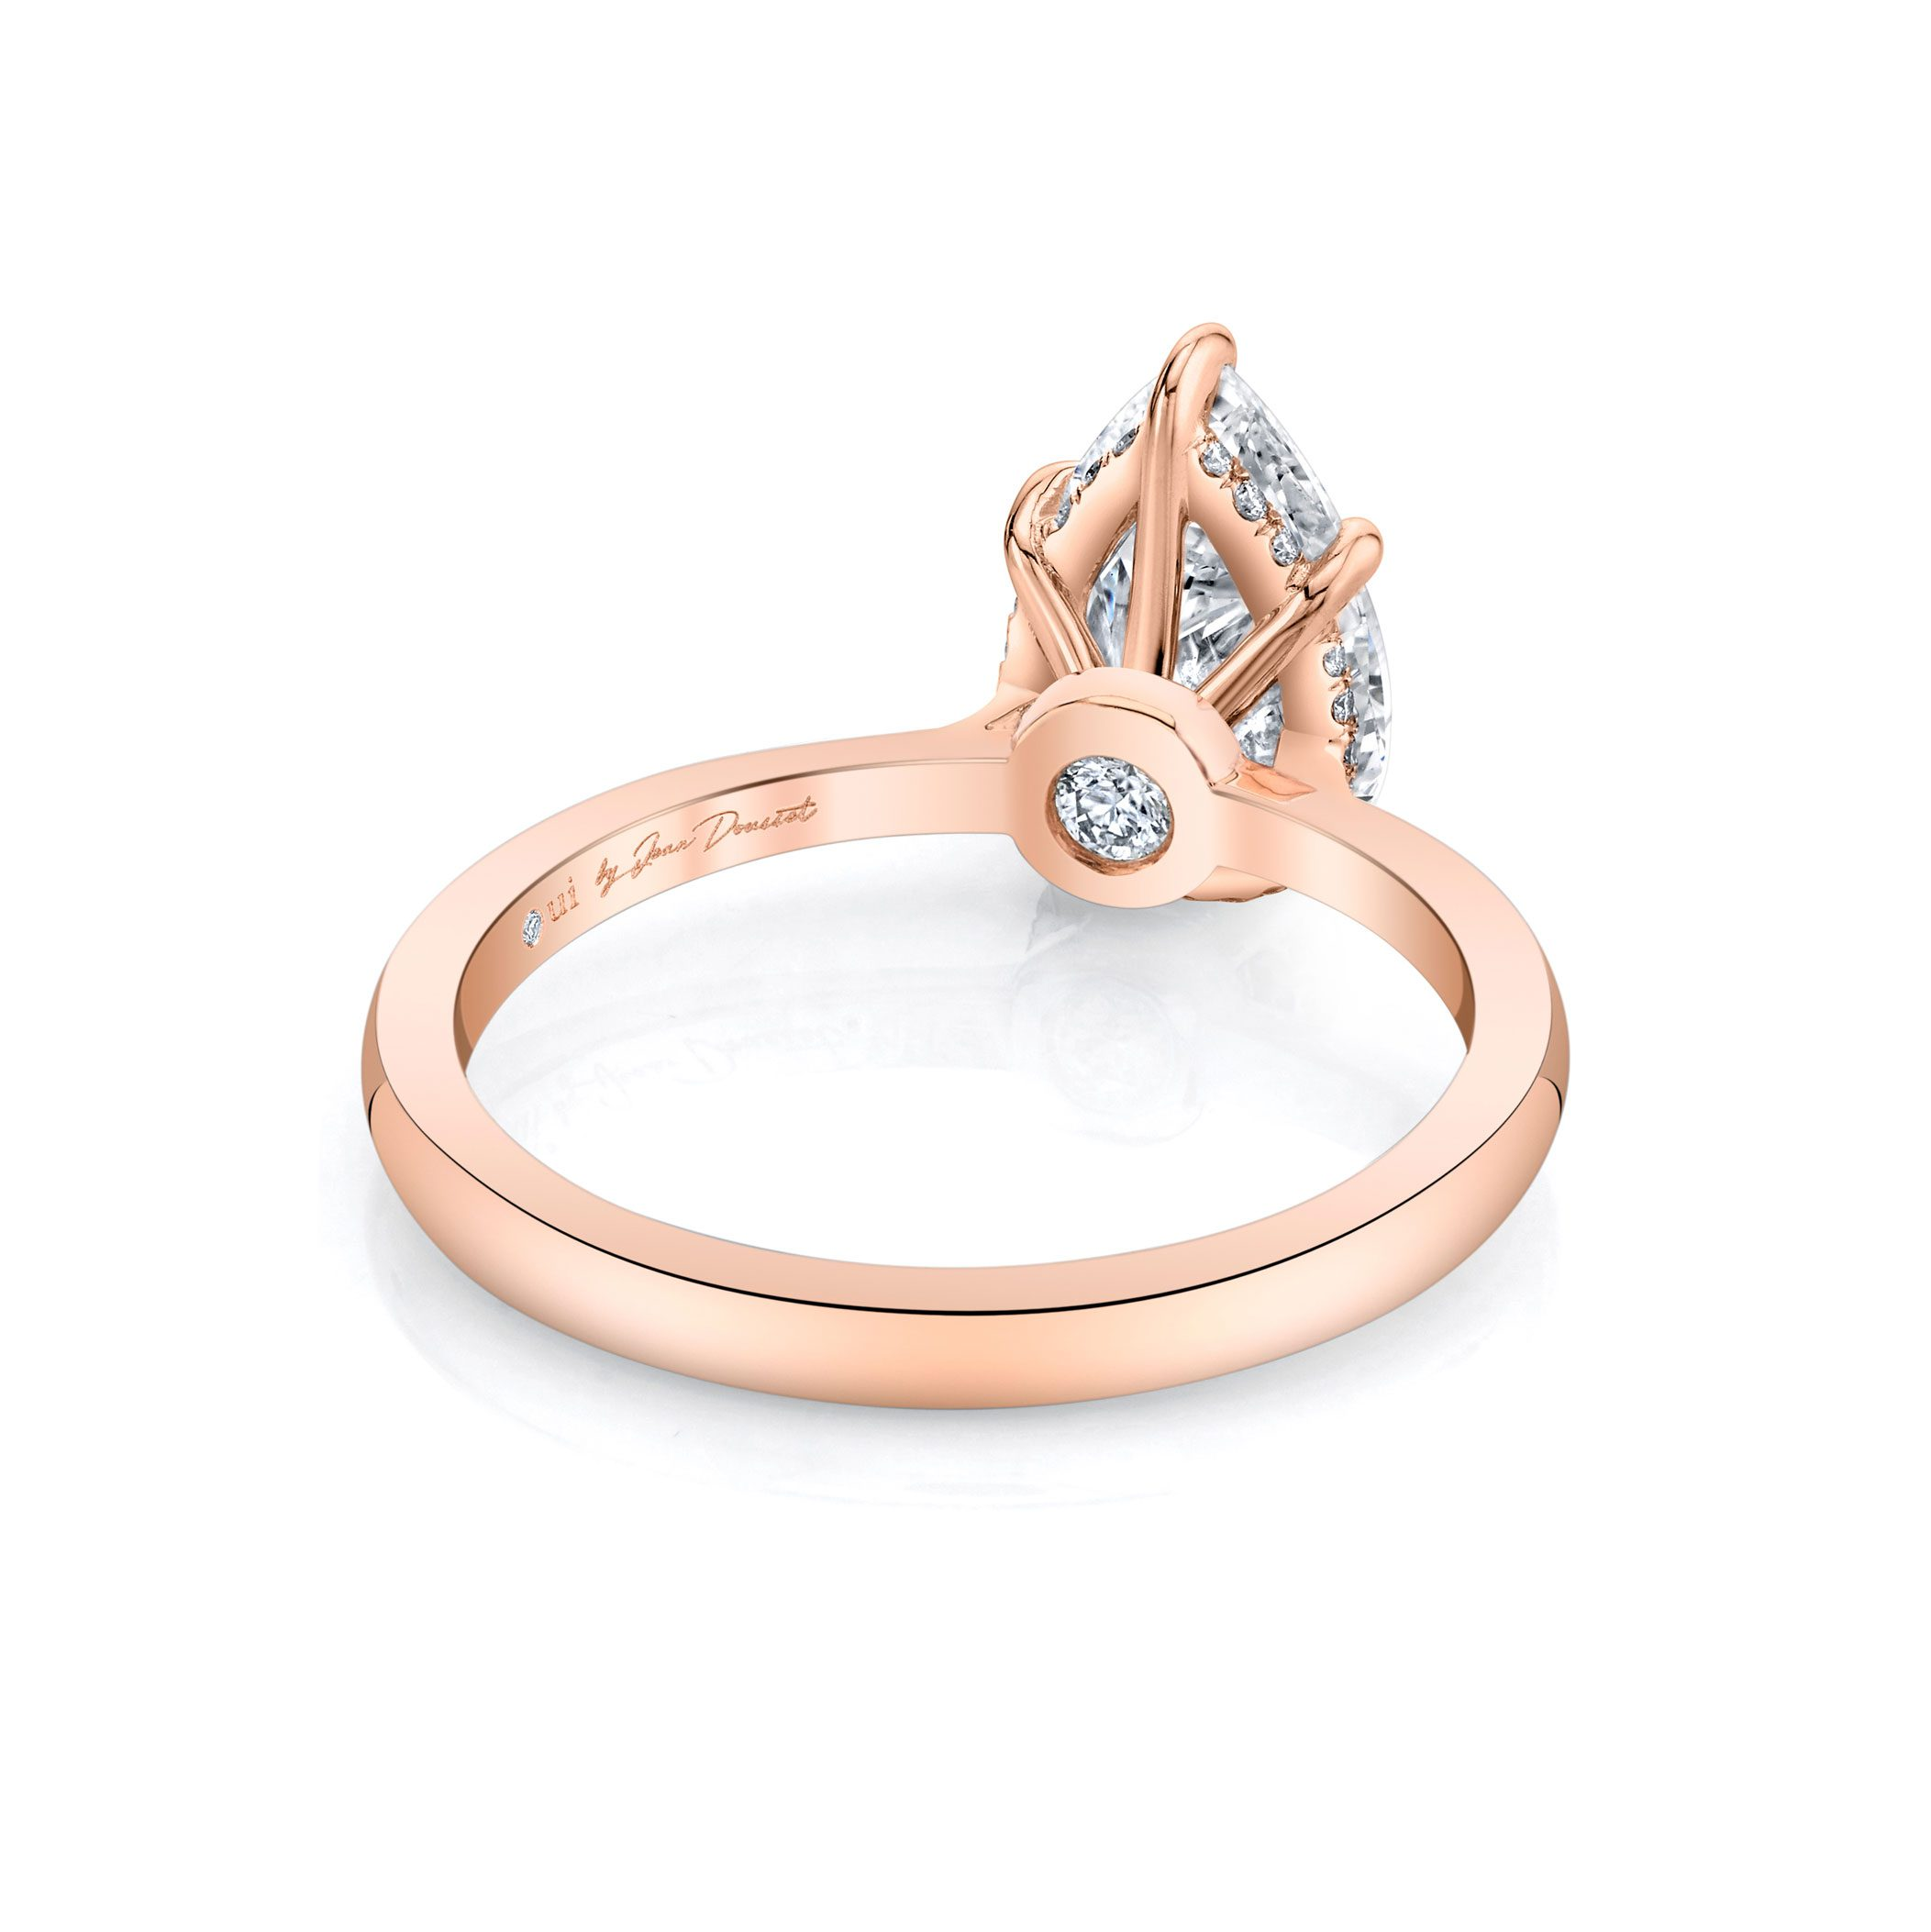 Colette Solitaire Pear Cut Lab Grown Diamond Engagement Ring in 18k Rose Gold solid band. Ring Side View.